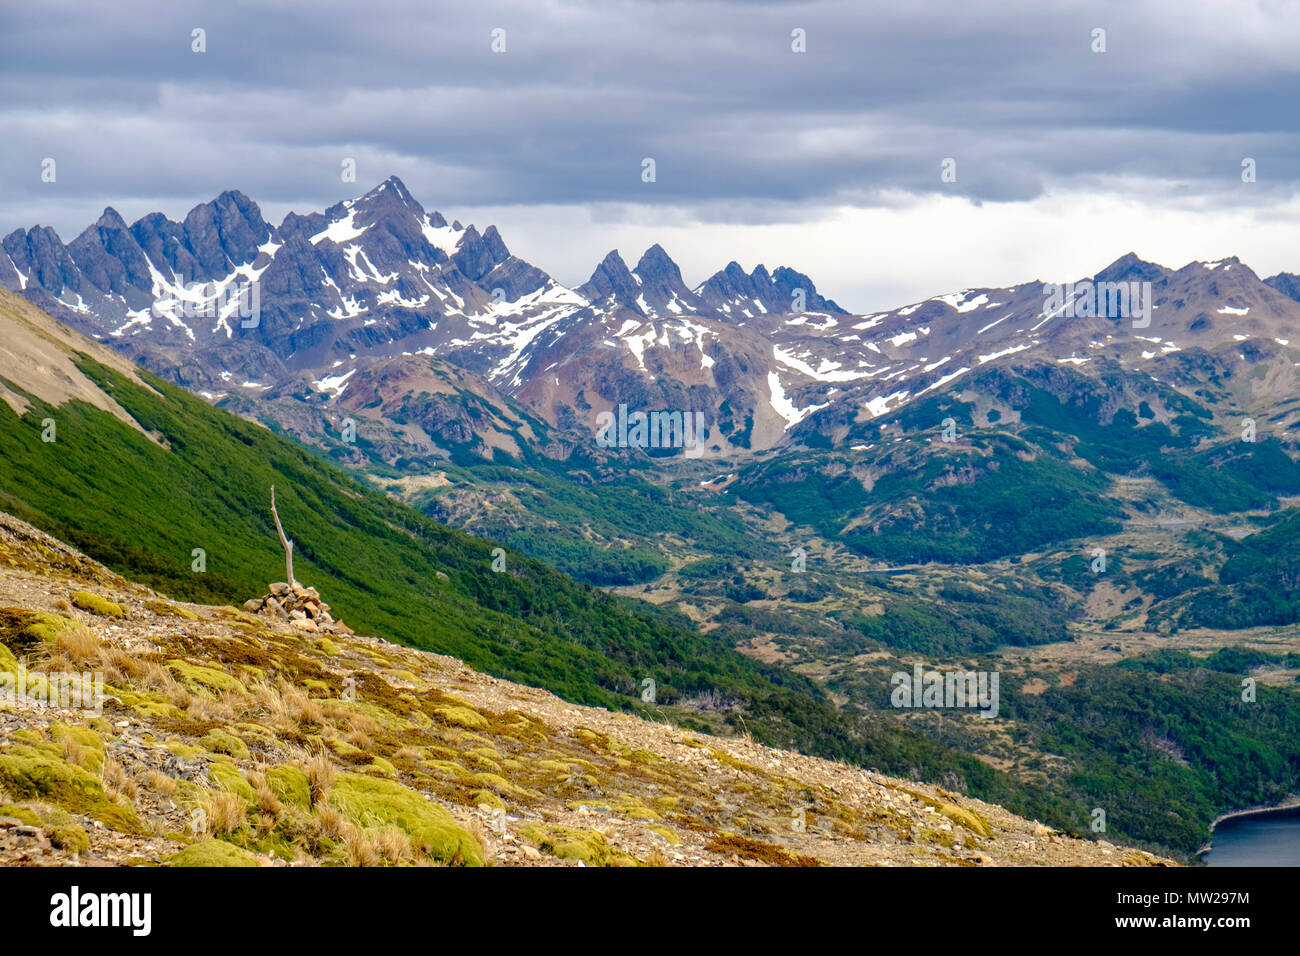 Near Puerto Williams in Chile, you can hike several days. The photo is taken on Cerro Bandera. In the background lie the 'Dientes de Navarino'. - Stock Image